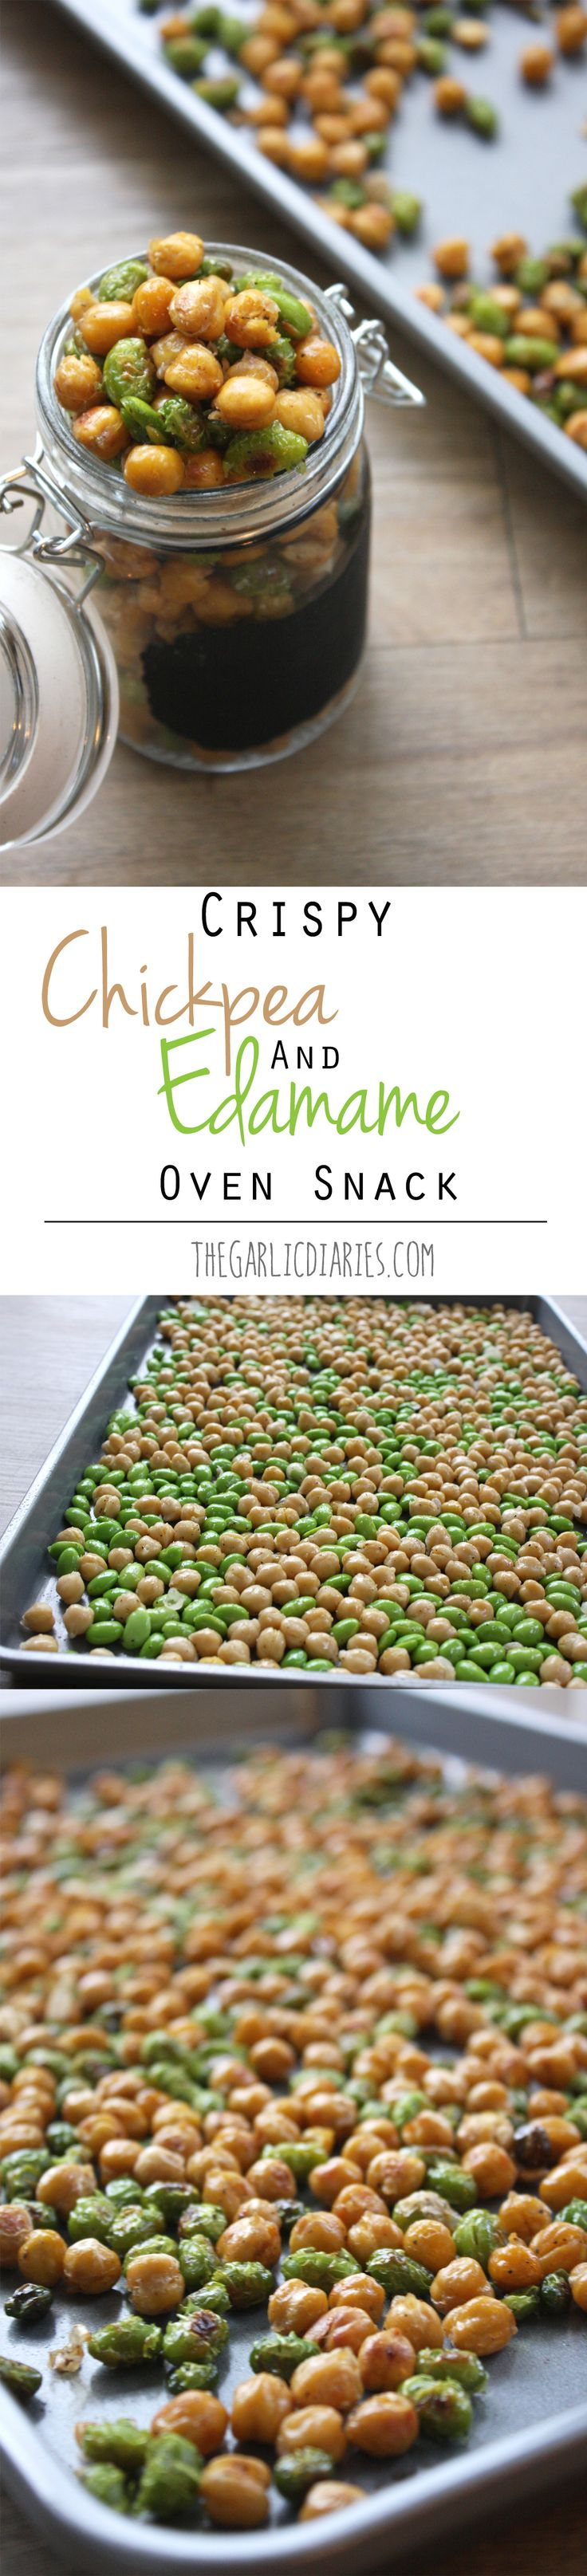 2- 16oz cans chickpeas, 1 1/2 cups edamame (2- 10oz steambags if in pods), olive oil, S&P 400degrees 30 min. stir halfway through